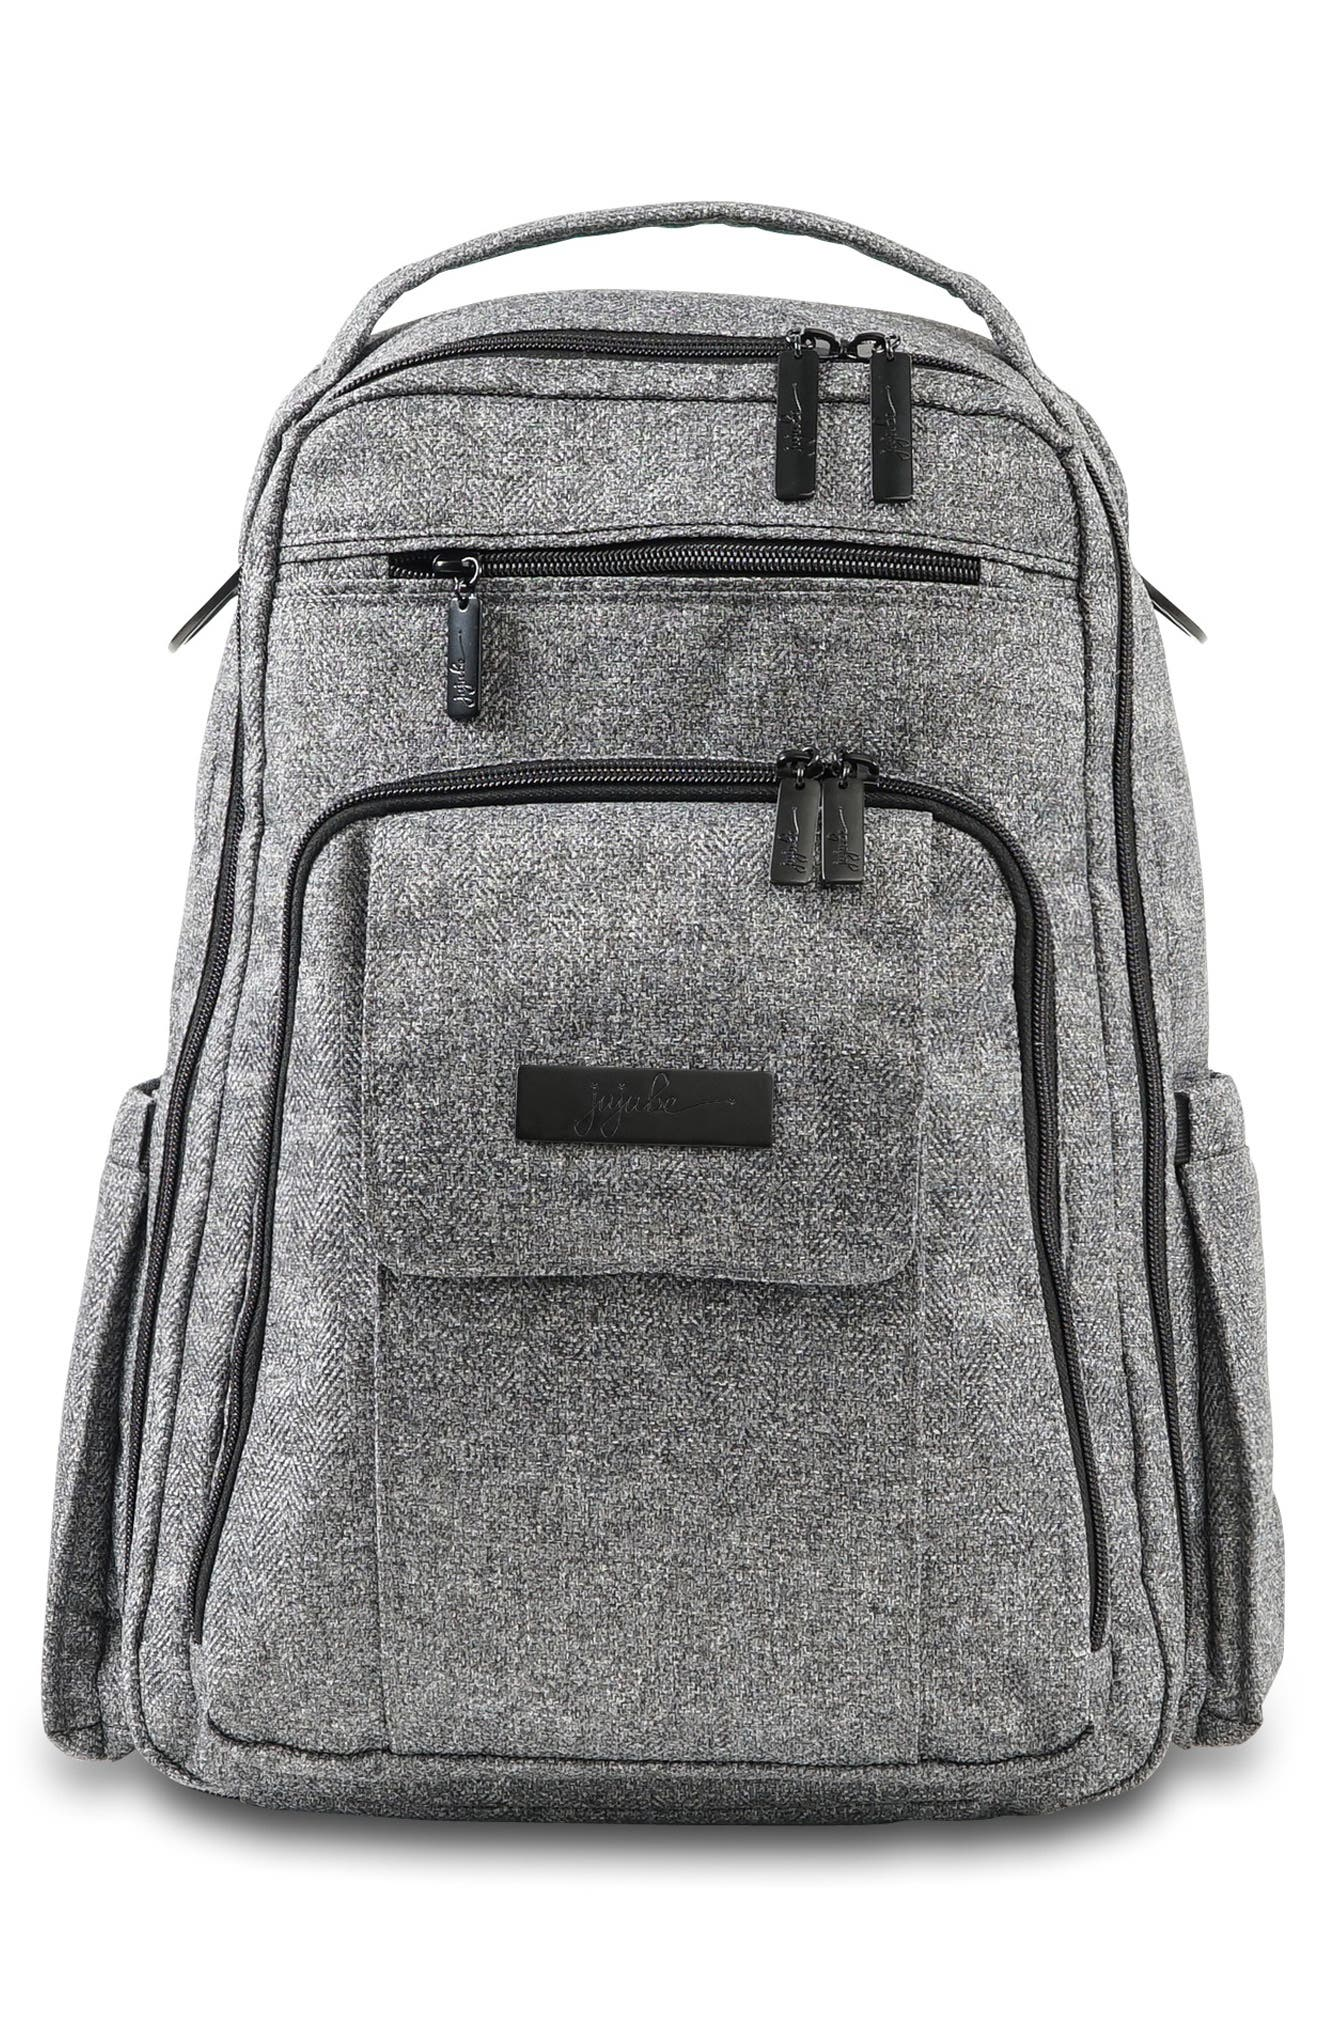 'Be Right Back - Onyx Collection' Diaper Backpack,                             Main thumbnail 1, color,                             GRAY MATTER